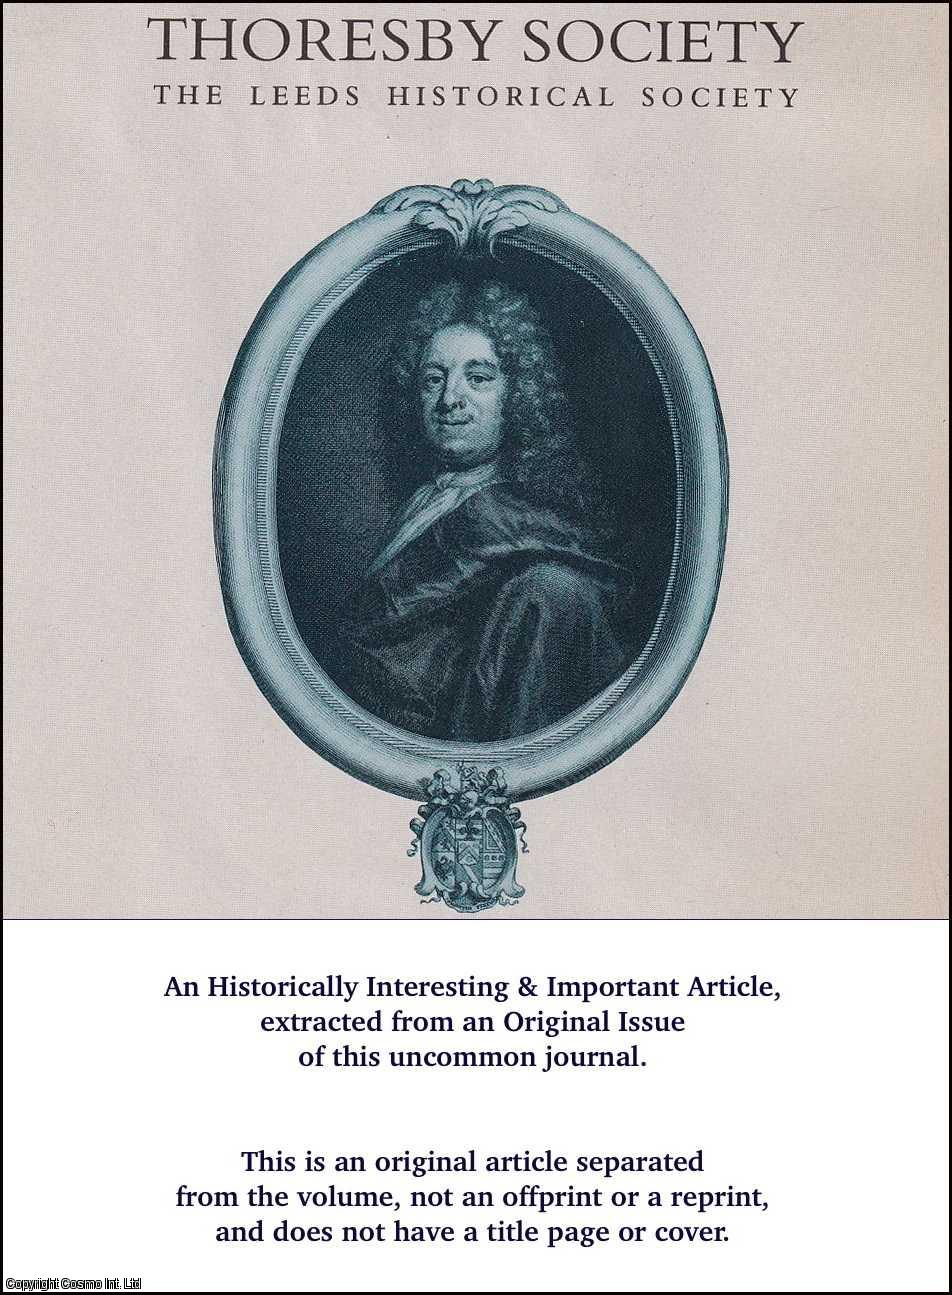 Extracts from M.S. Book Written or Possessed by Ralph Thoresby., Lumb, G.D.